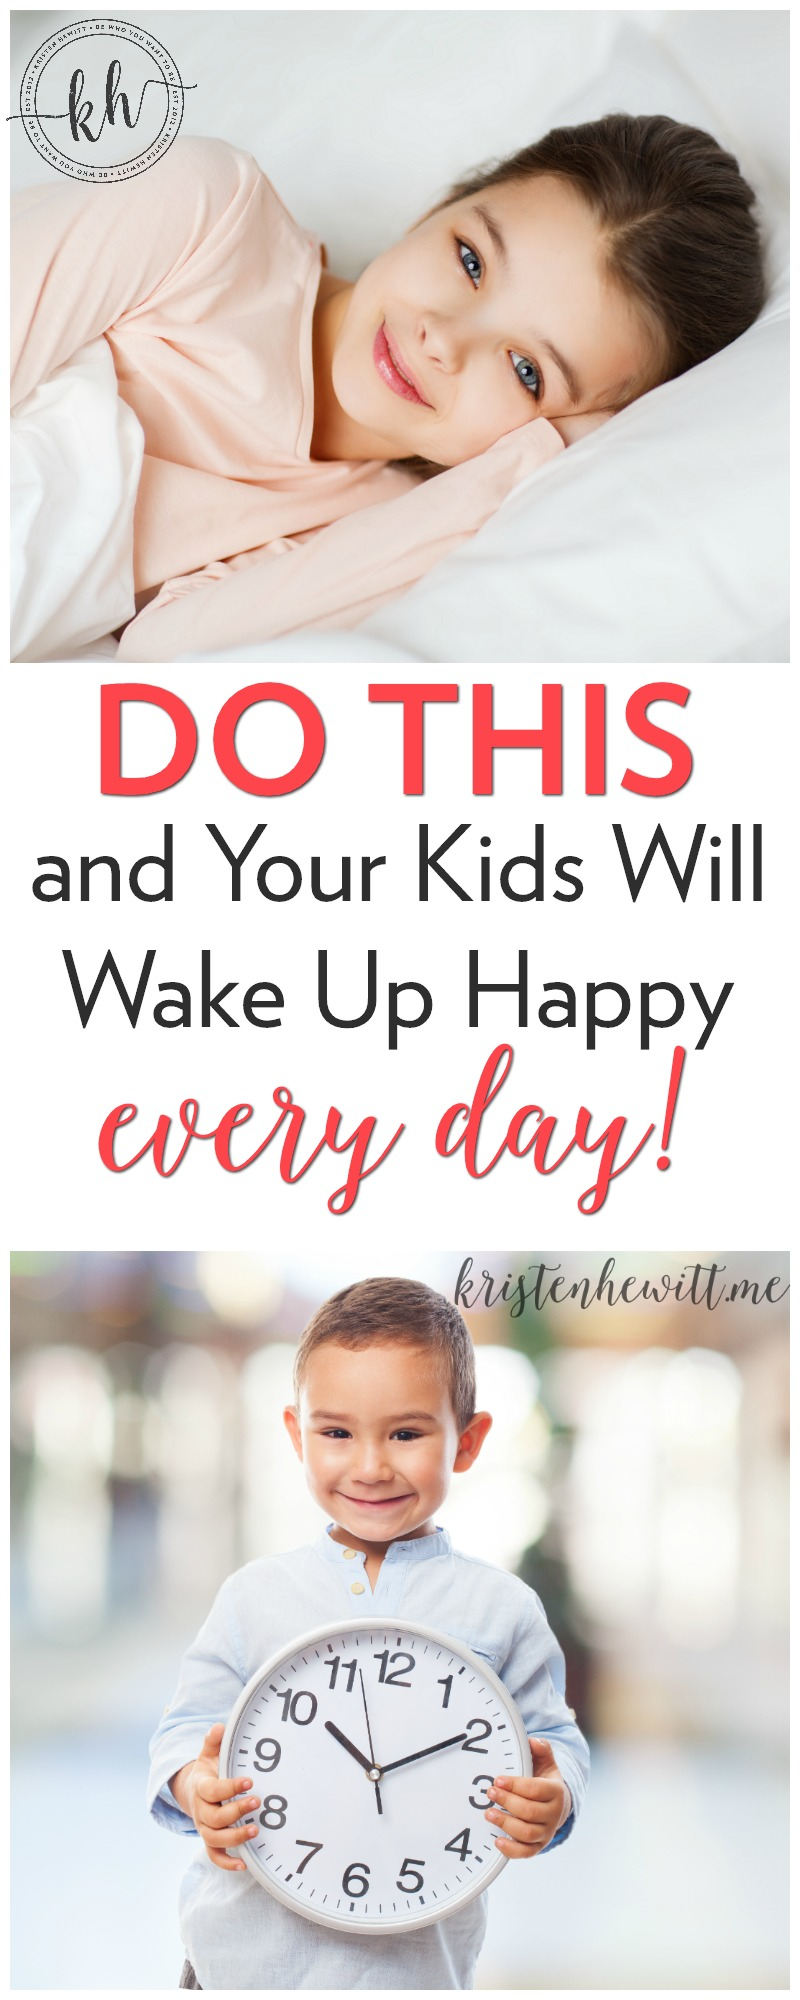 Do your kids wake up grumpy? Or mornings the worst part of your day? Try this and I guarantee your kids will wake up happy every day!